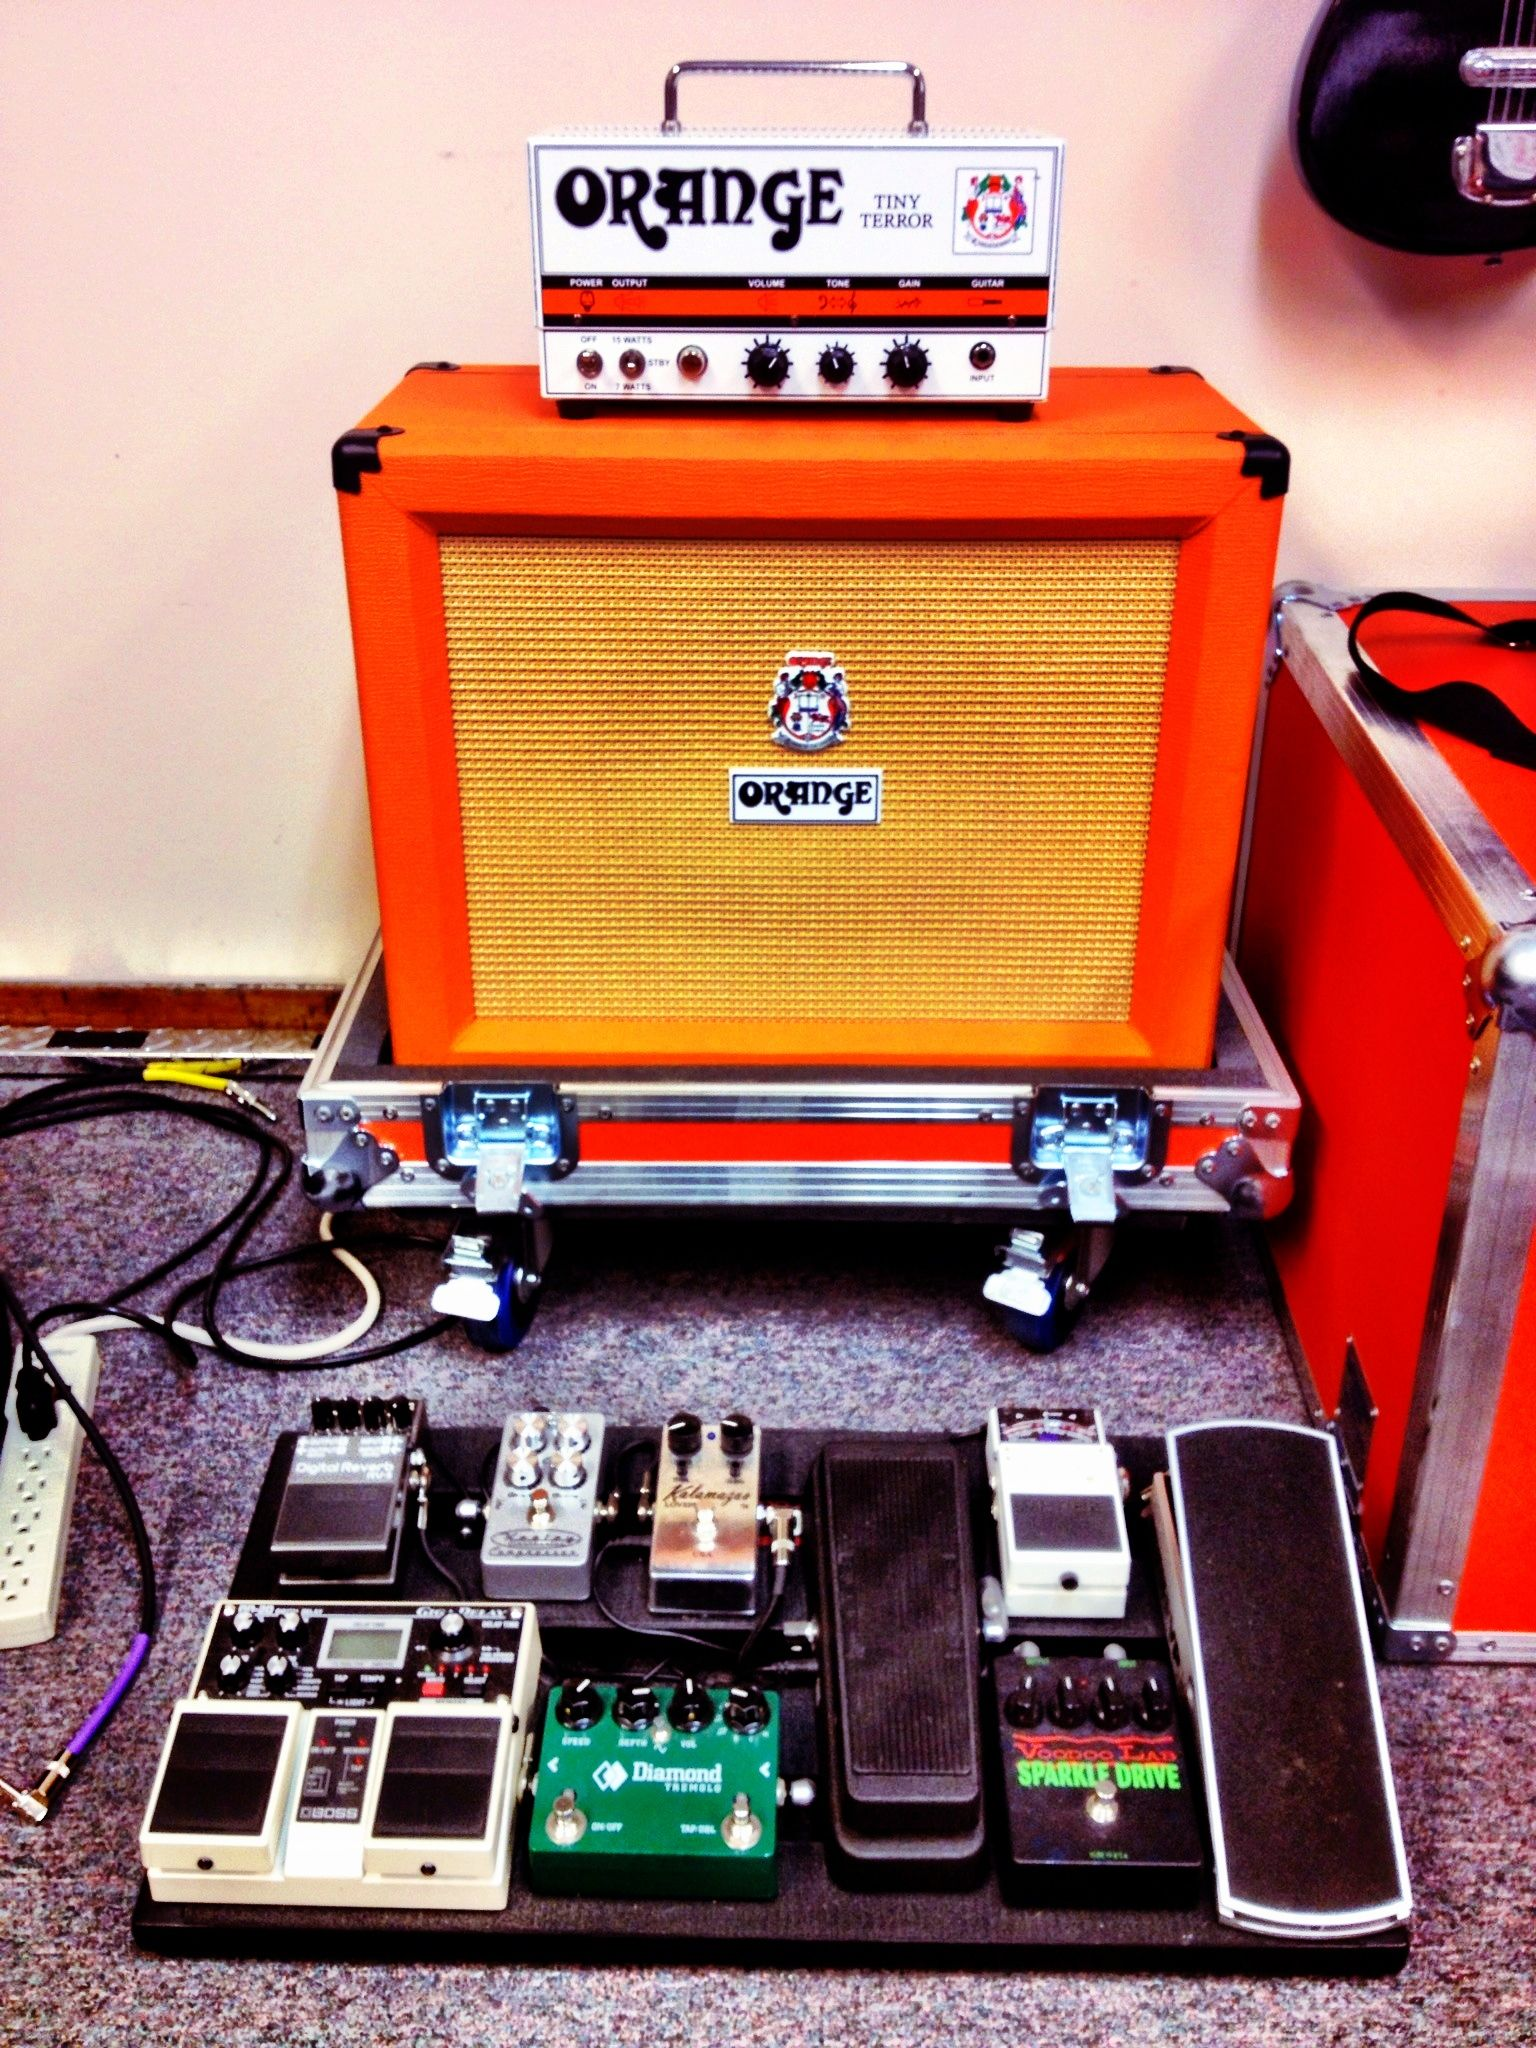 orange amp and pedalboard music pedalboard guitar pedals guitar amp. Black Bedroom Furniture Sets. Home Design Ideas